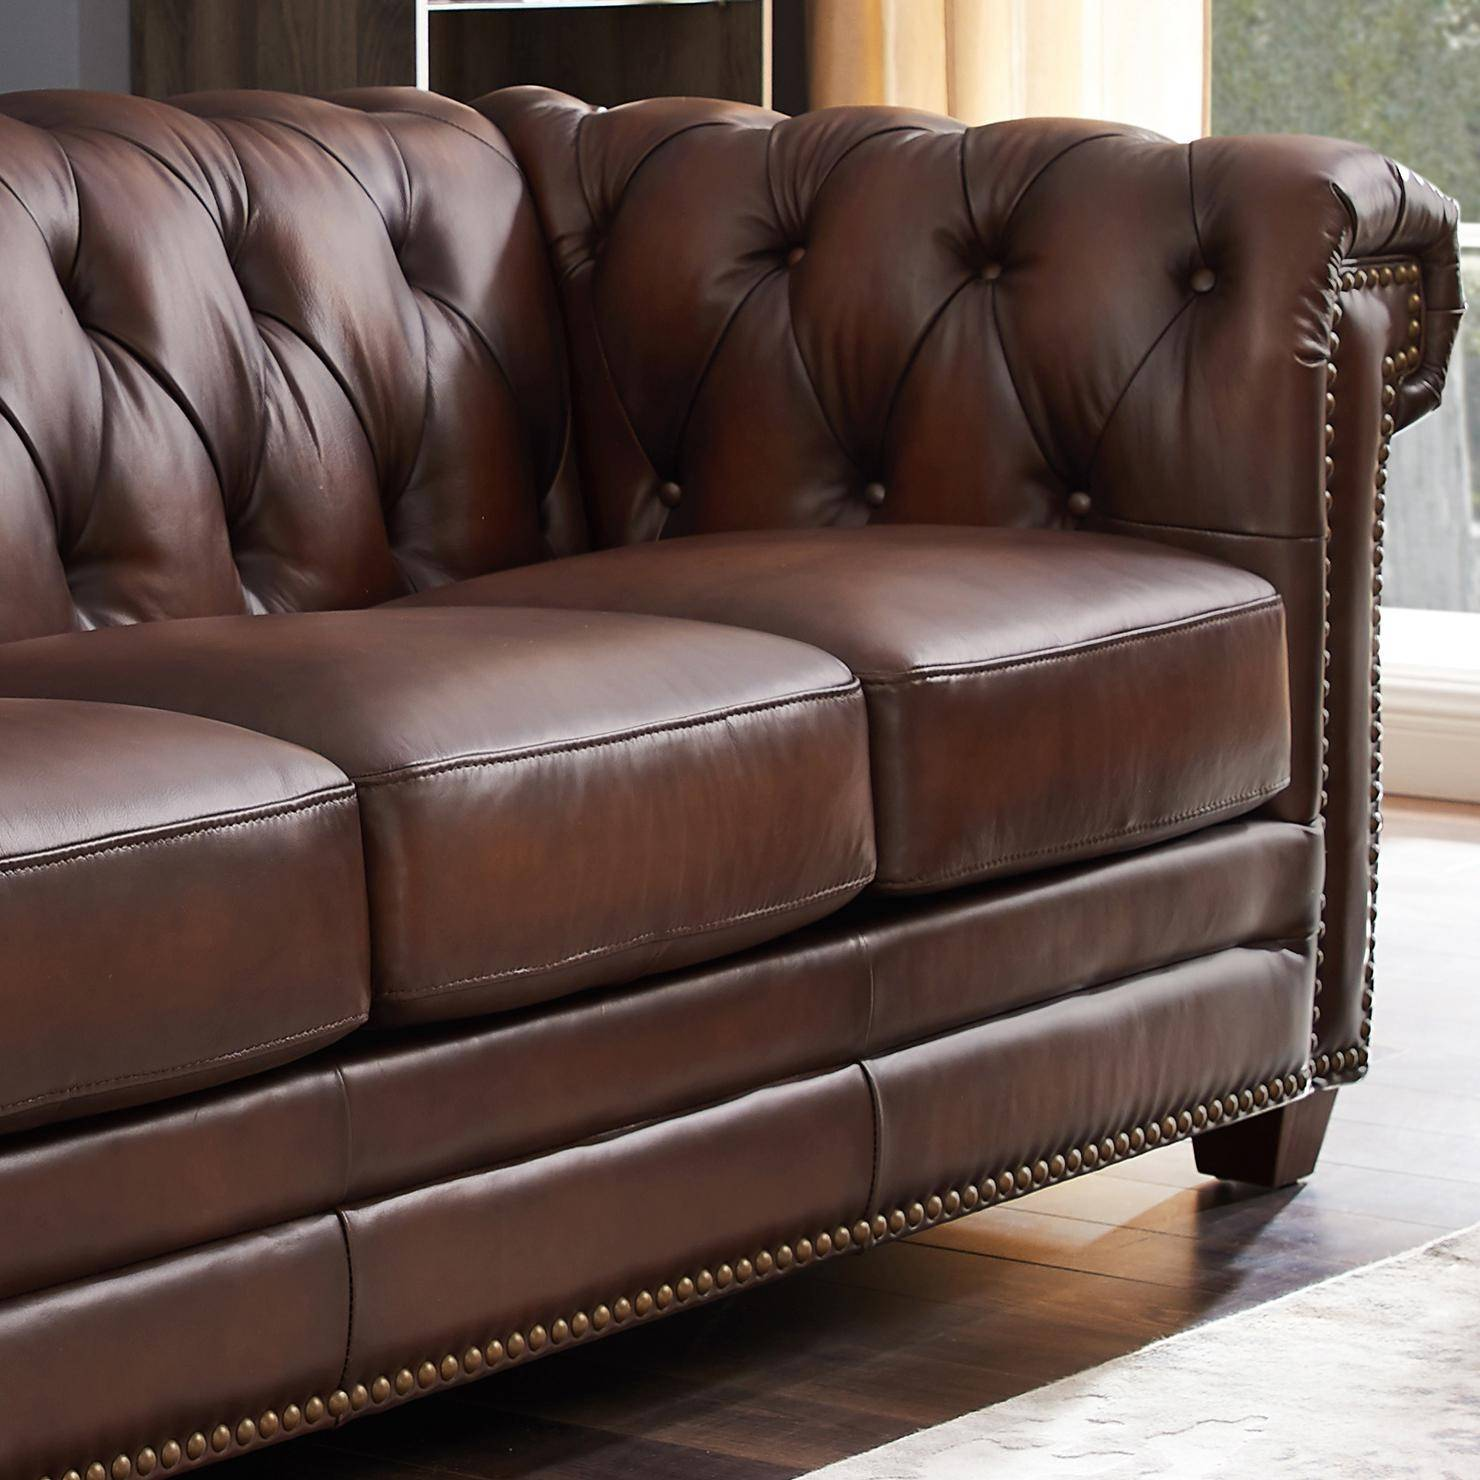 - Dark Brown STANWOOD Genuine Leather Sofa Chair Set 3Pcs HYDELINE